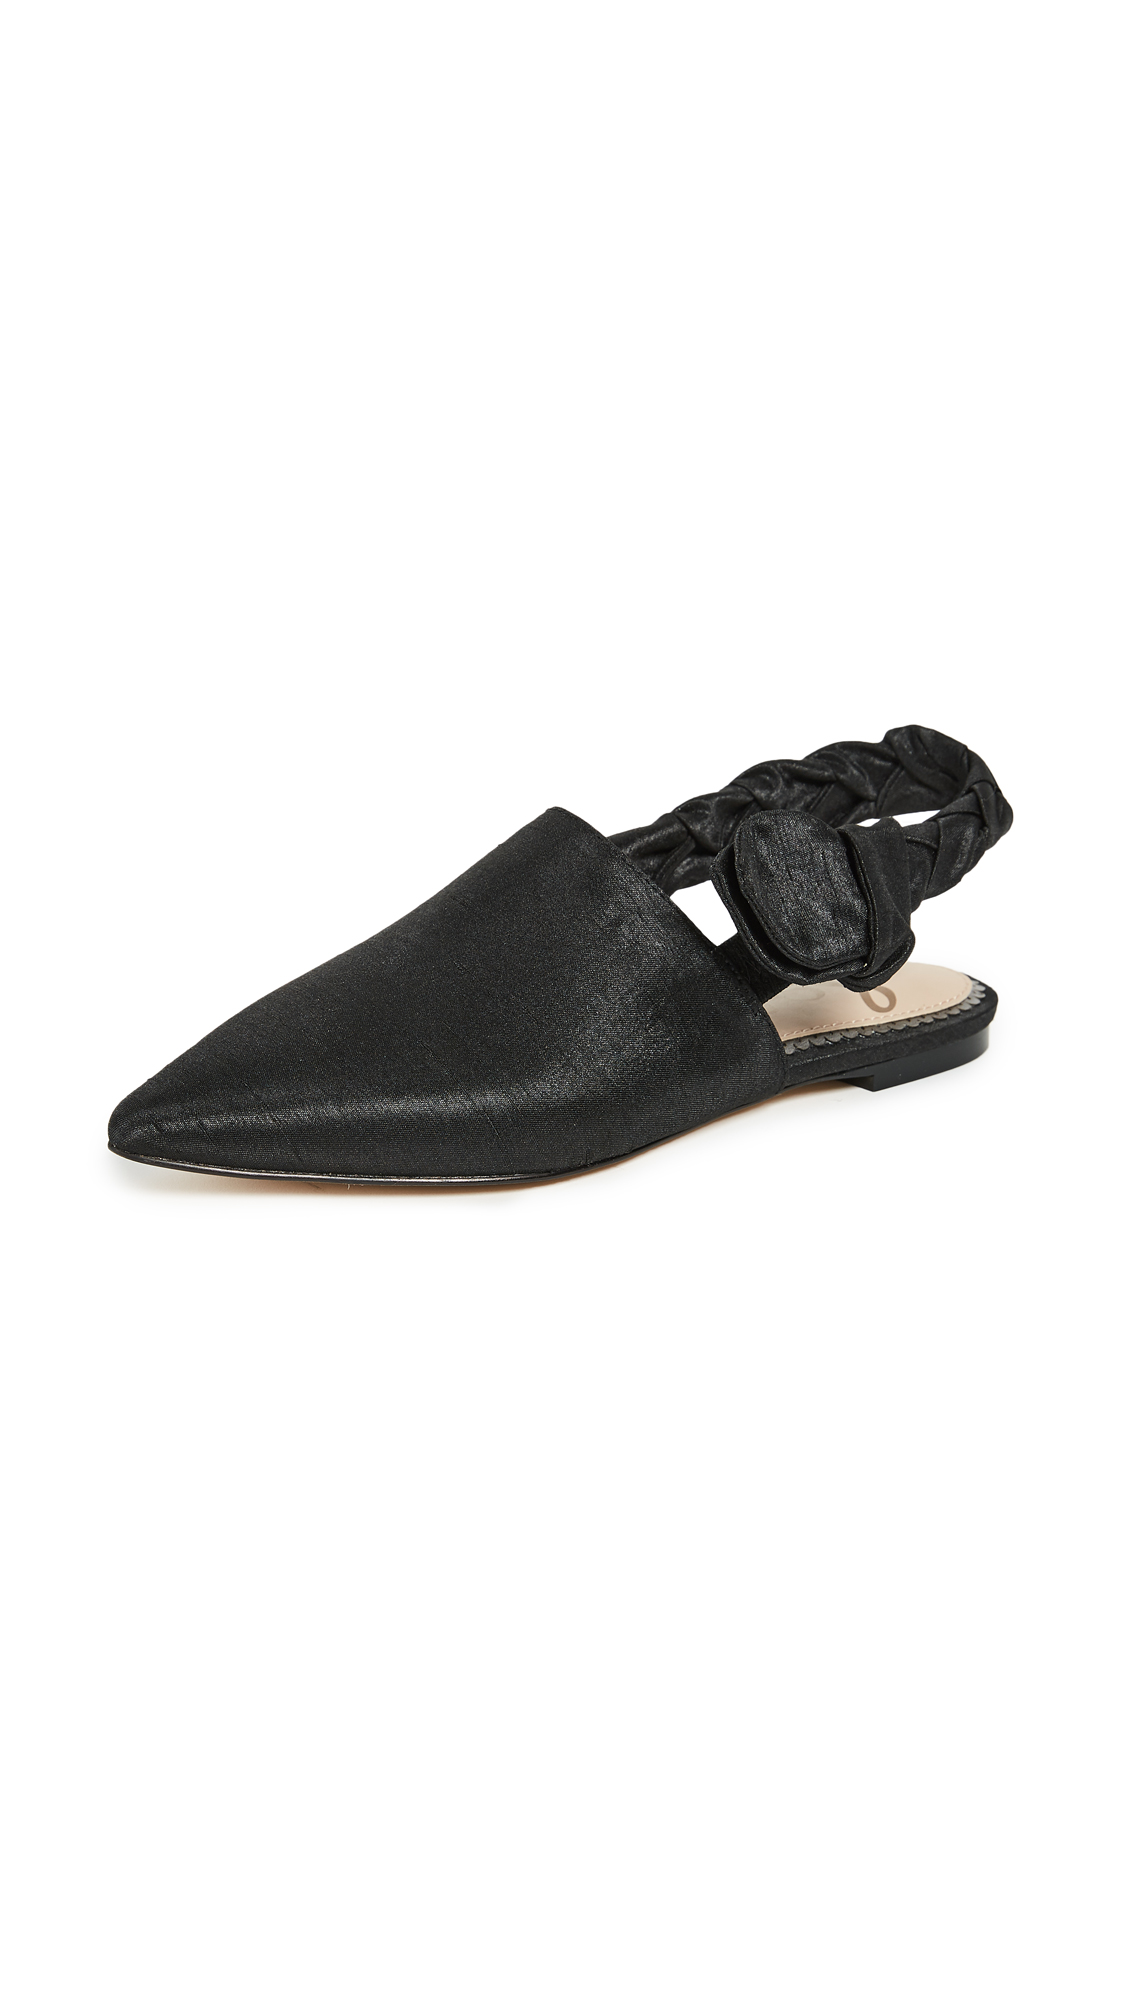 Sam Edelman Rivers Flats - Black